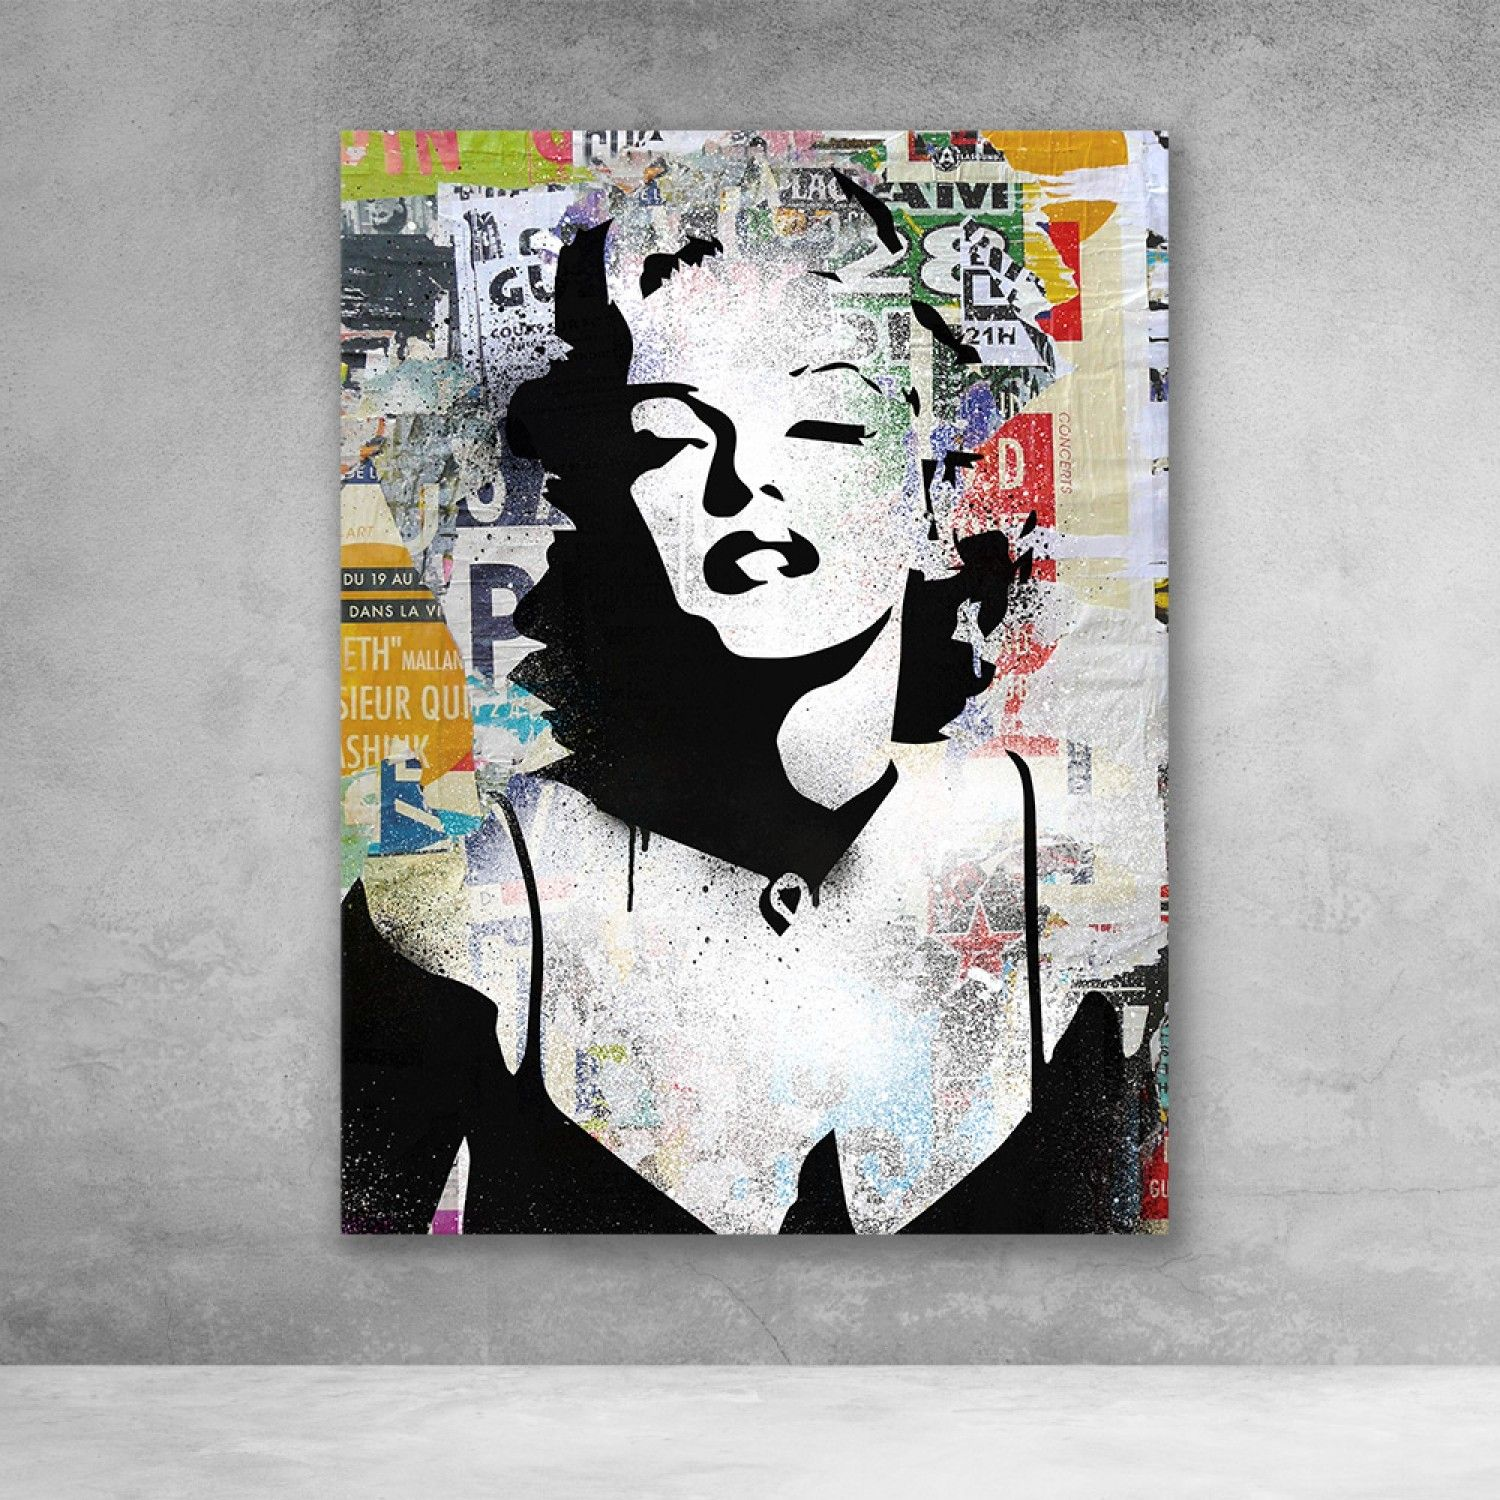 Marilyn Monroe Decollage Pop Culture Modern Canvas Wall Art In 2021 Pop Art Canvas Modern Wall Art Canvas Wall Art Canvas Prints